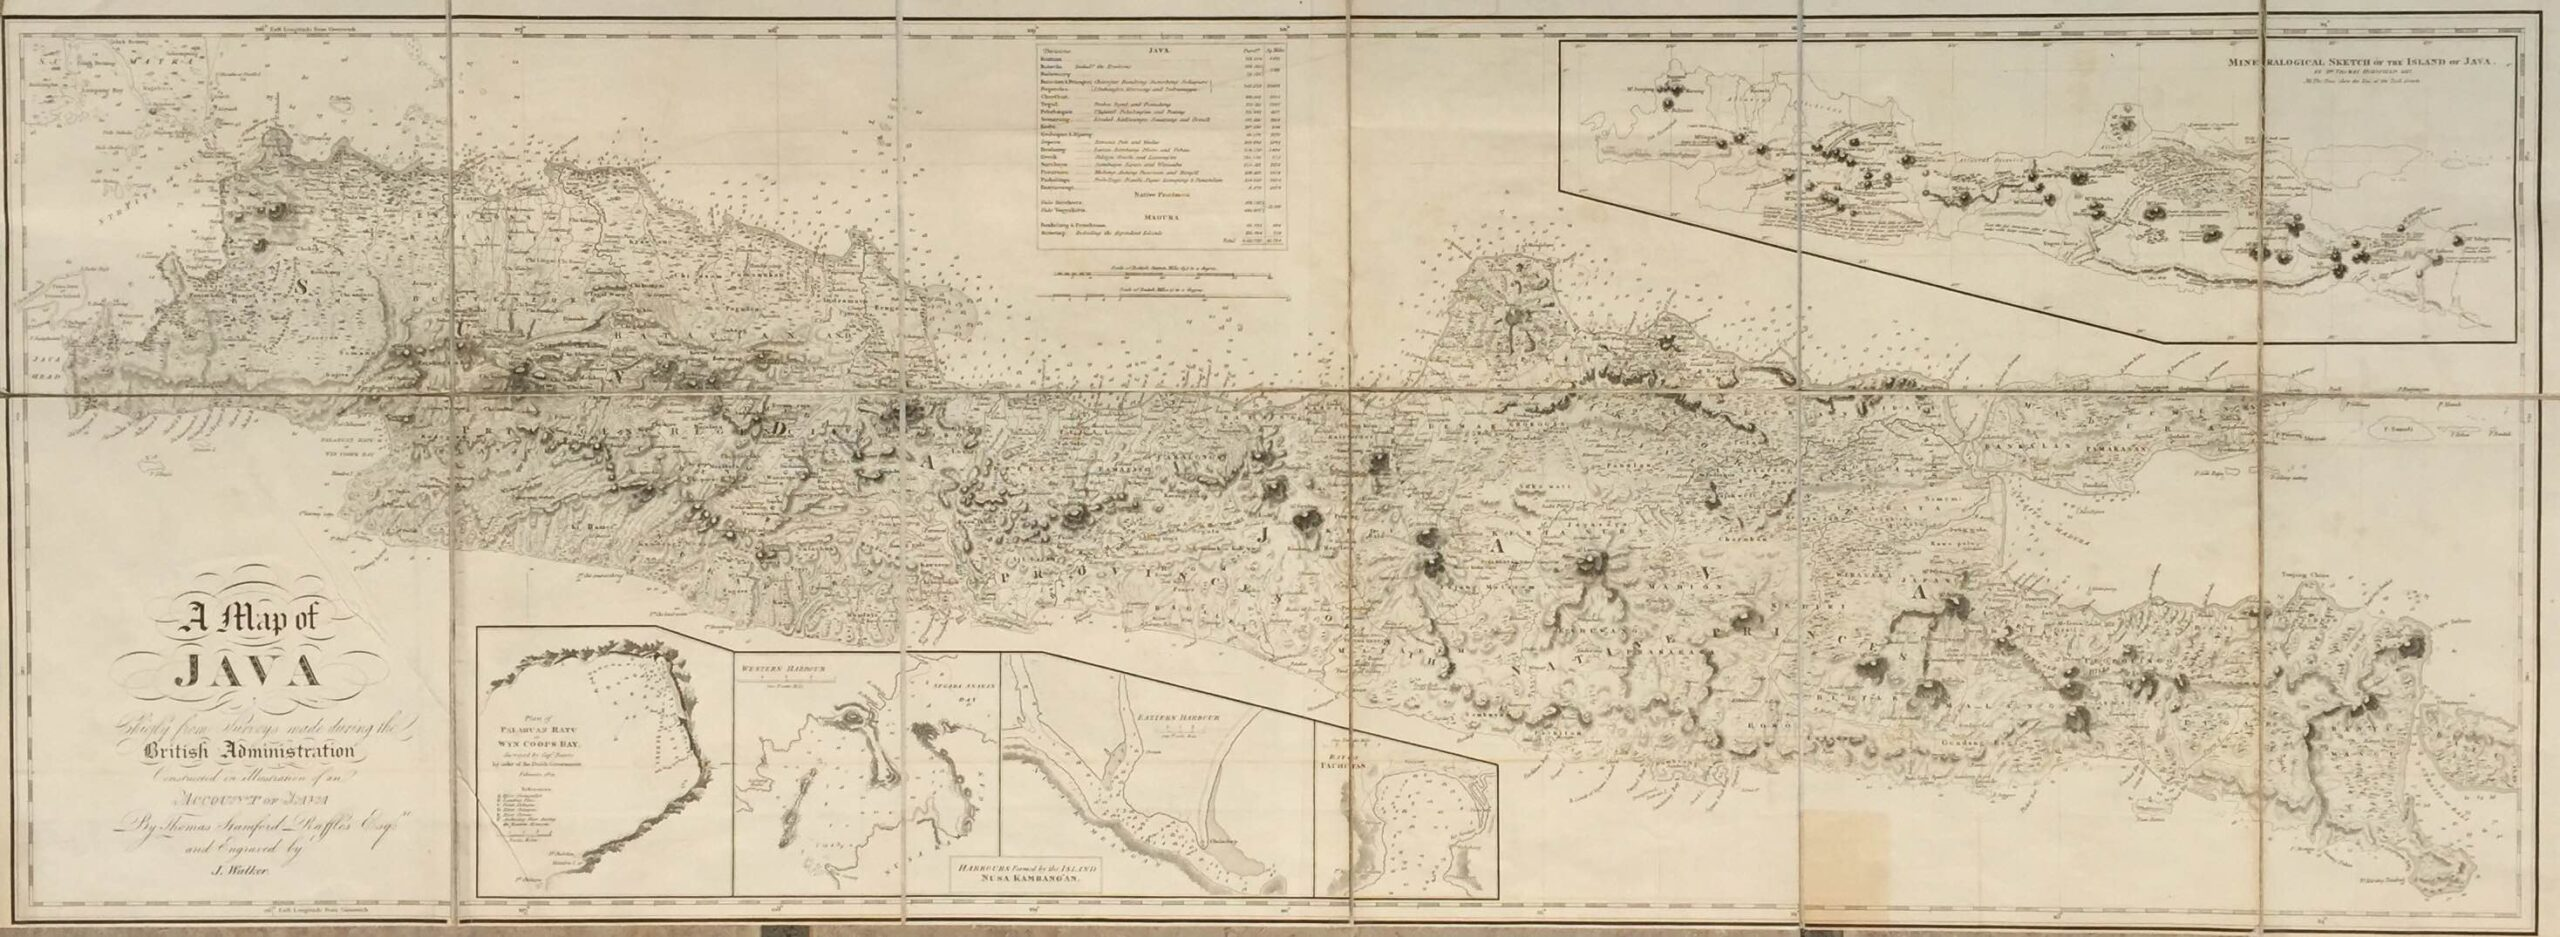 Antique Map Java by Raffles (c.1817) - SOLD